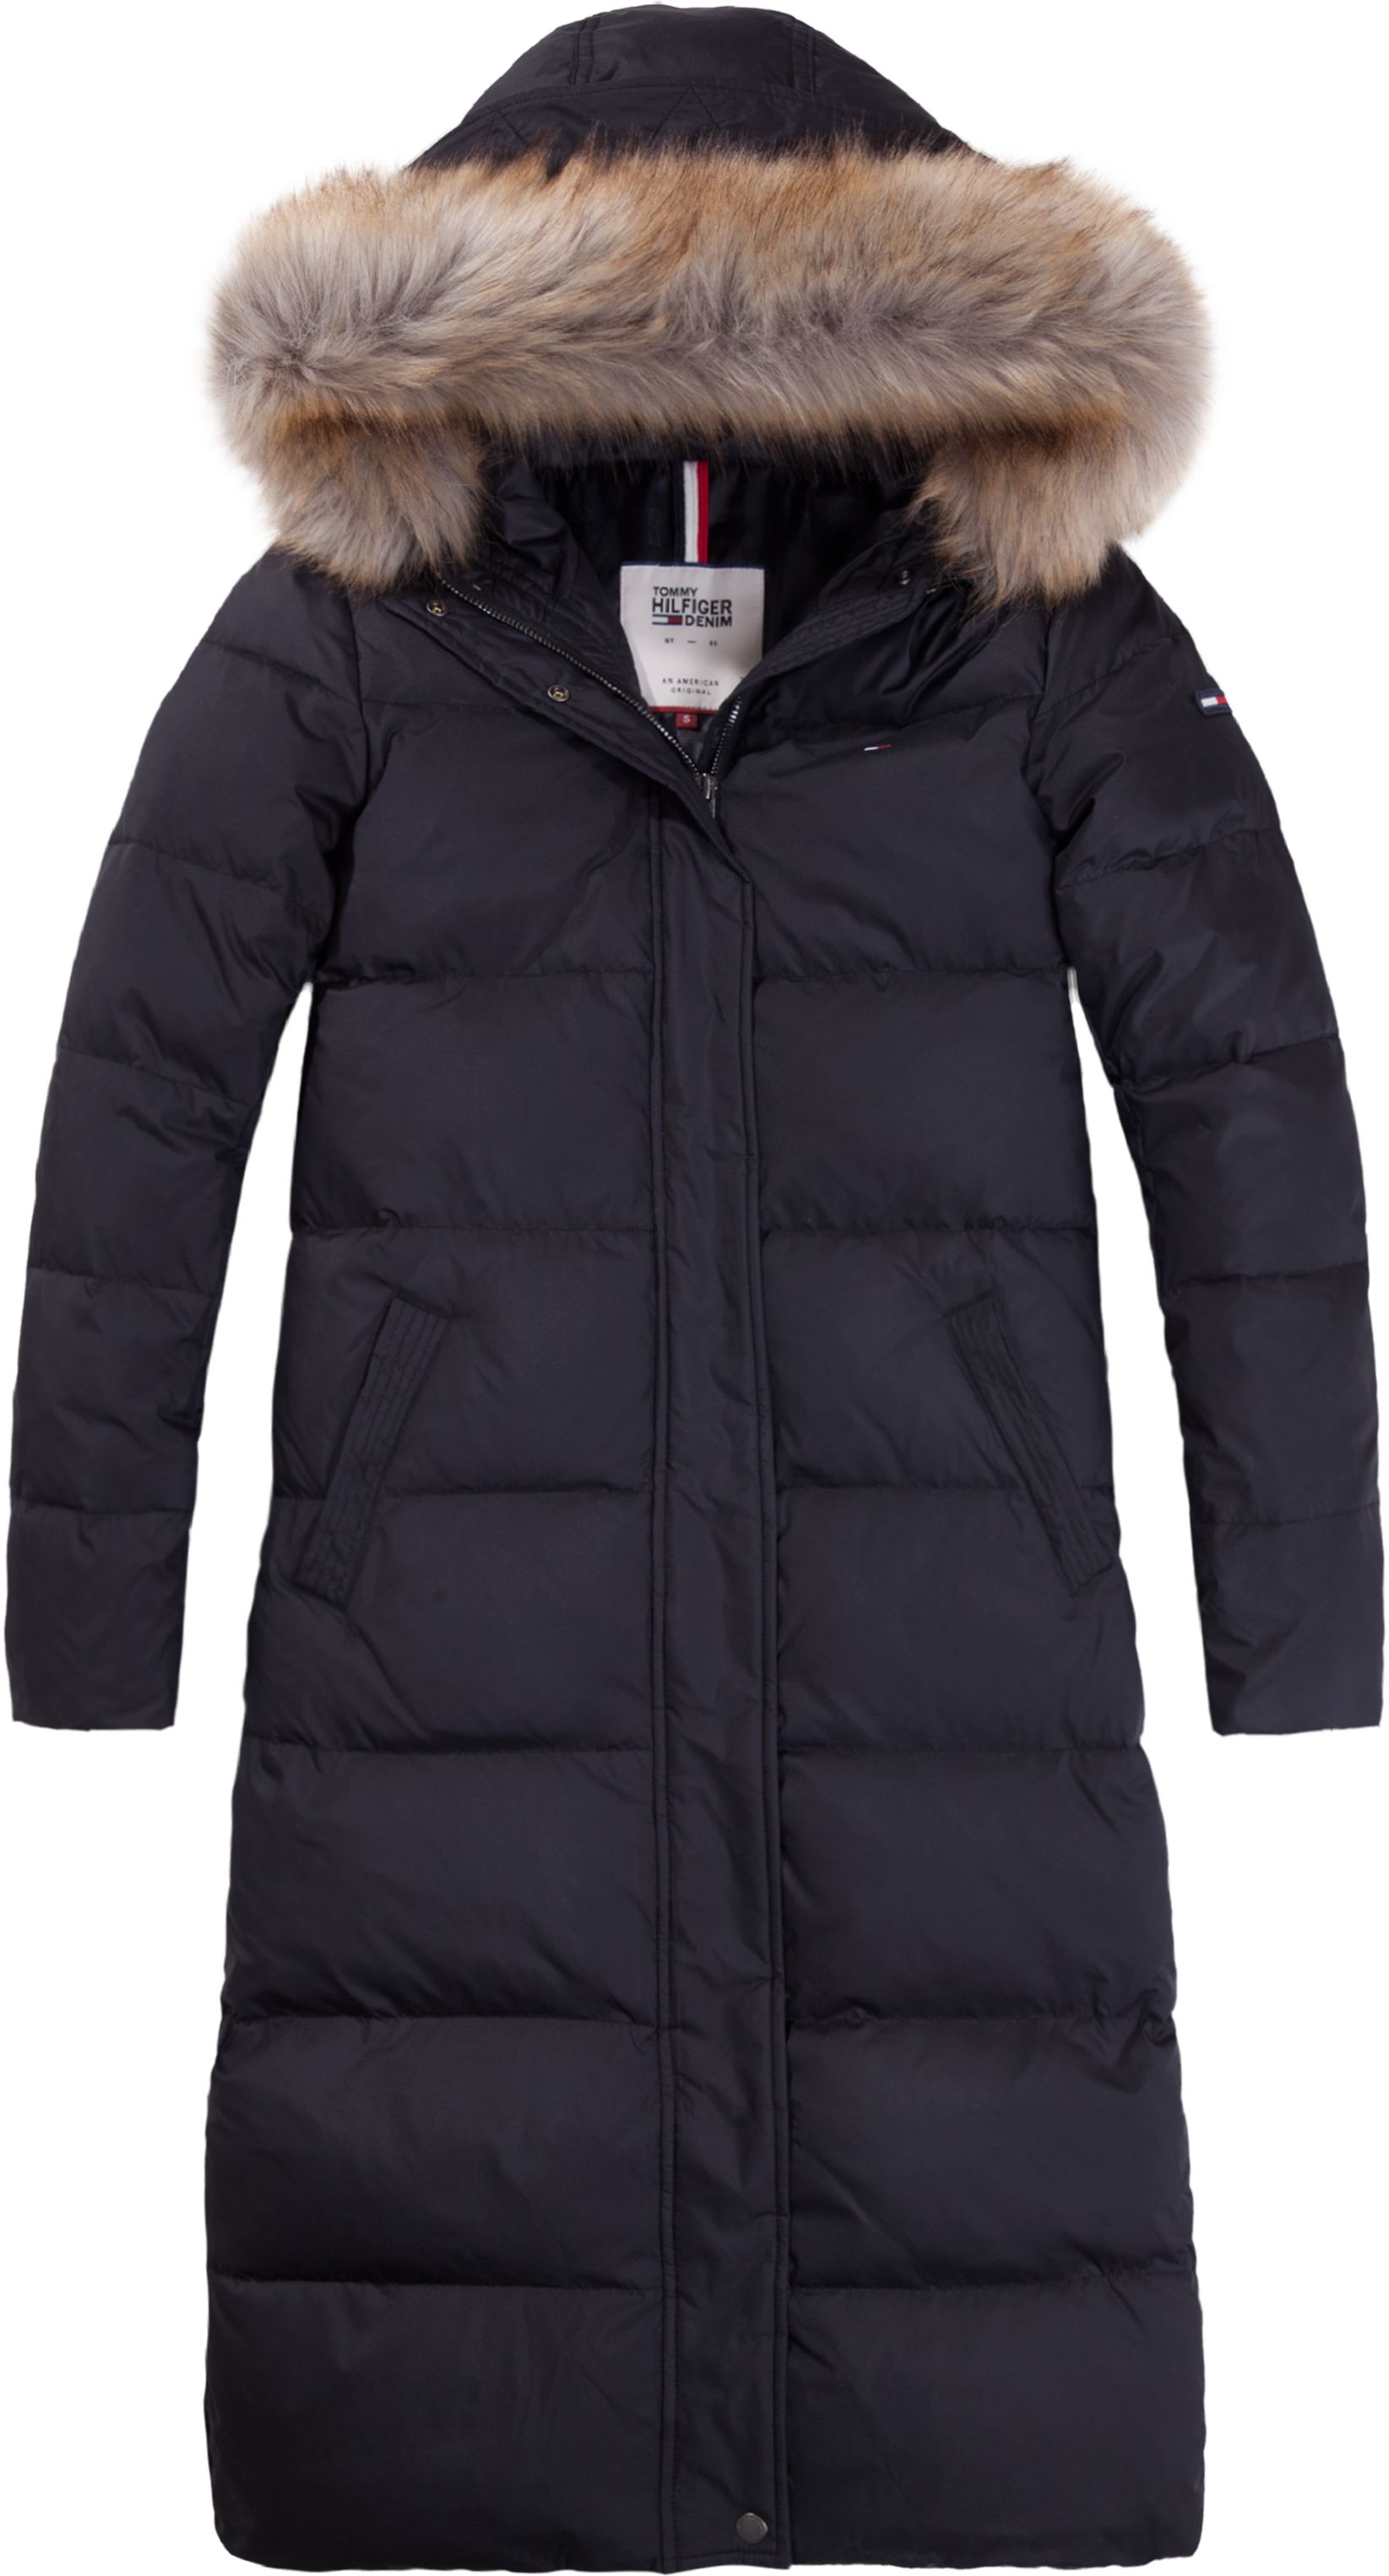 50 For Tommy Hilfiger 3 For Women Luxury Outlet